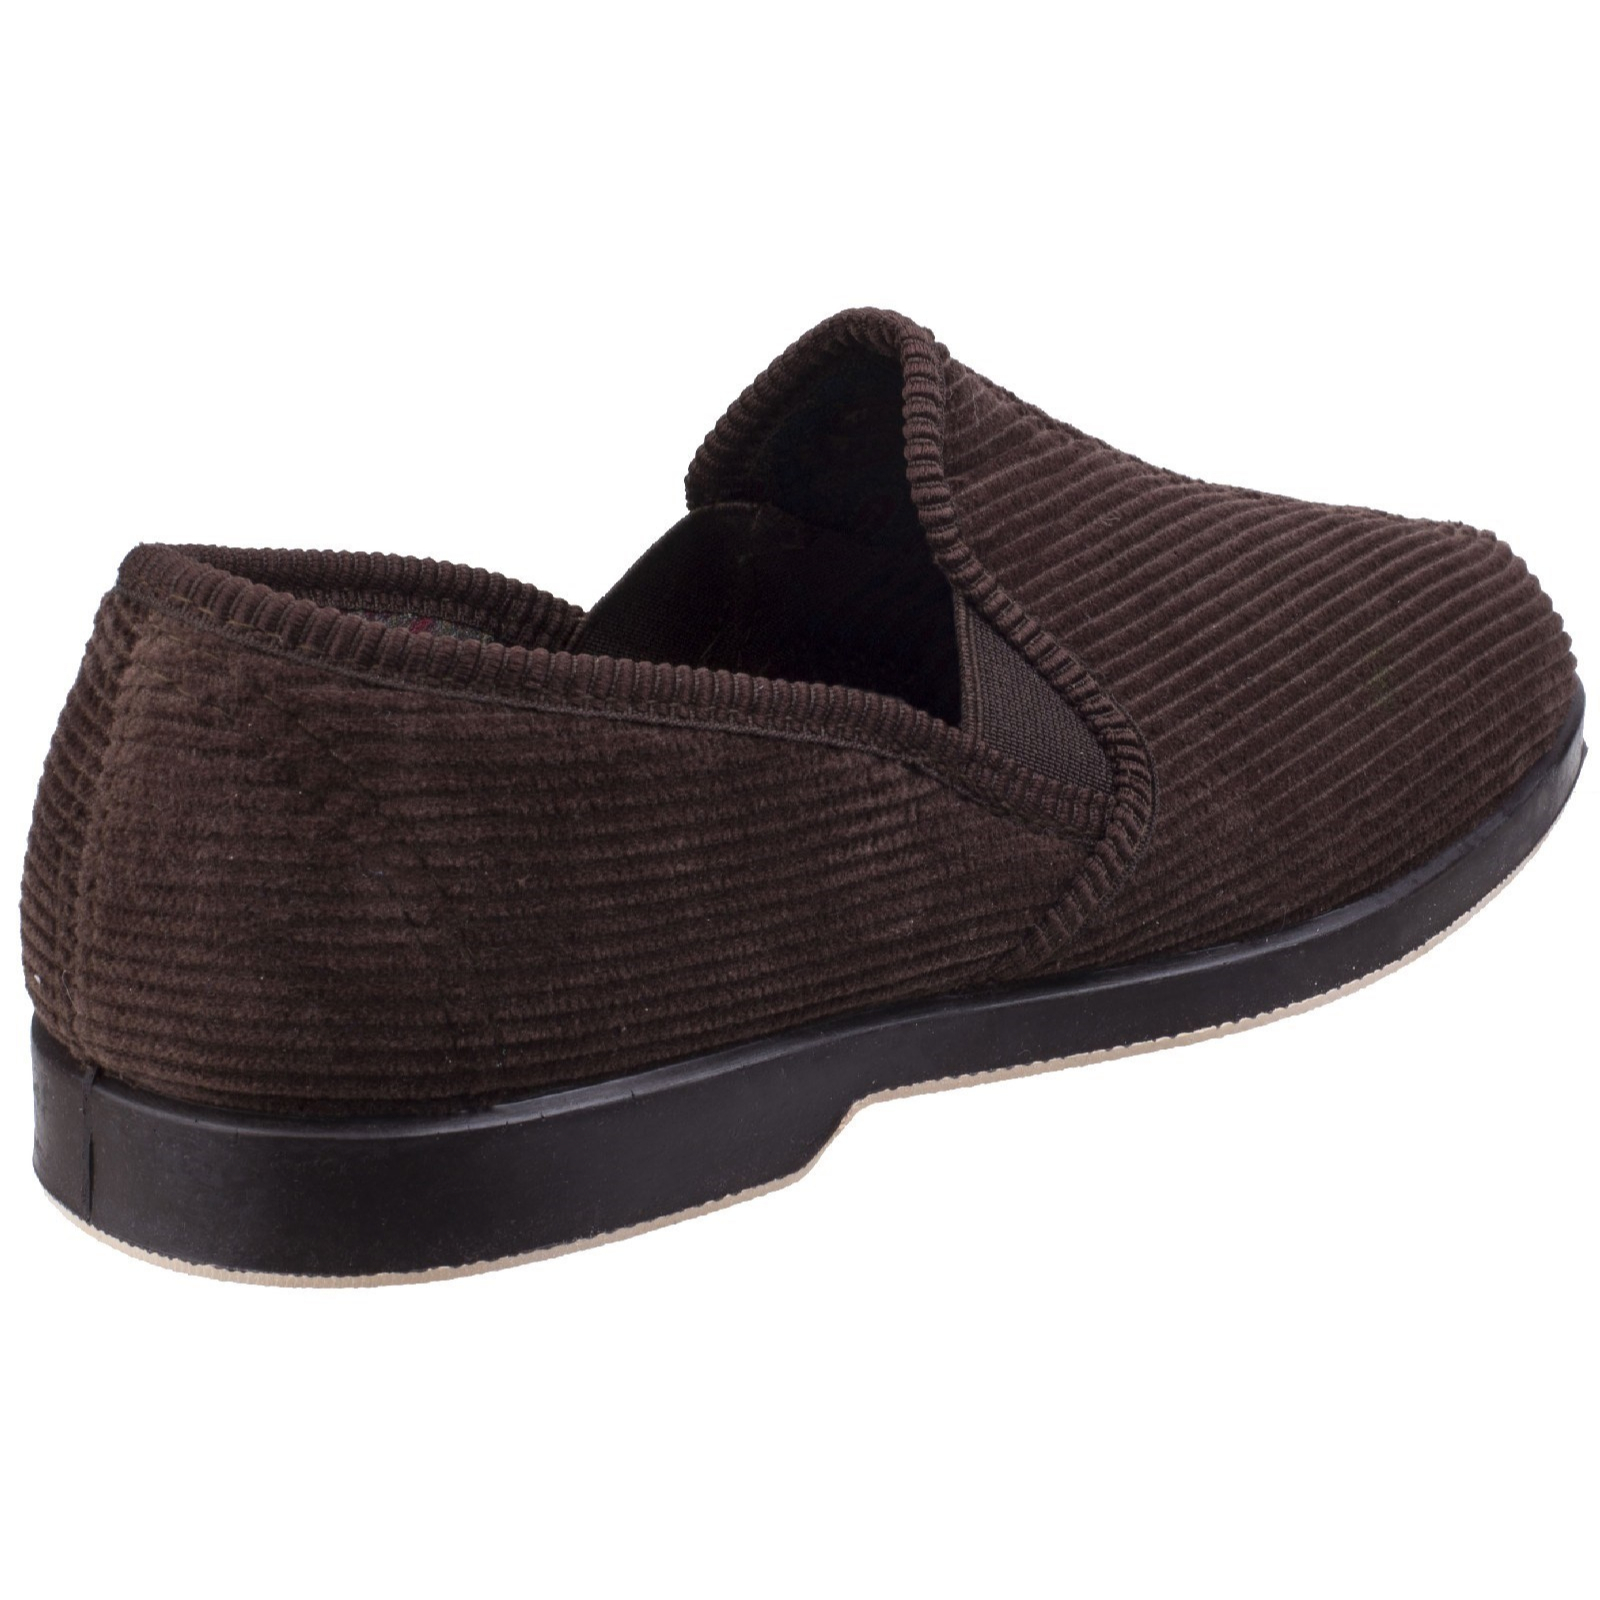 Exeter Slippers Size 12